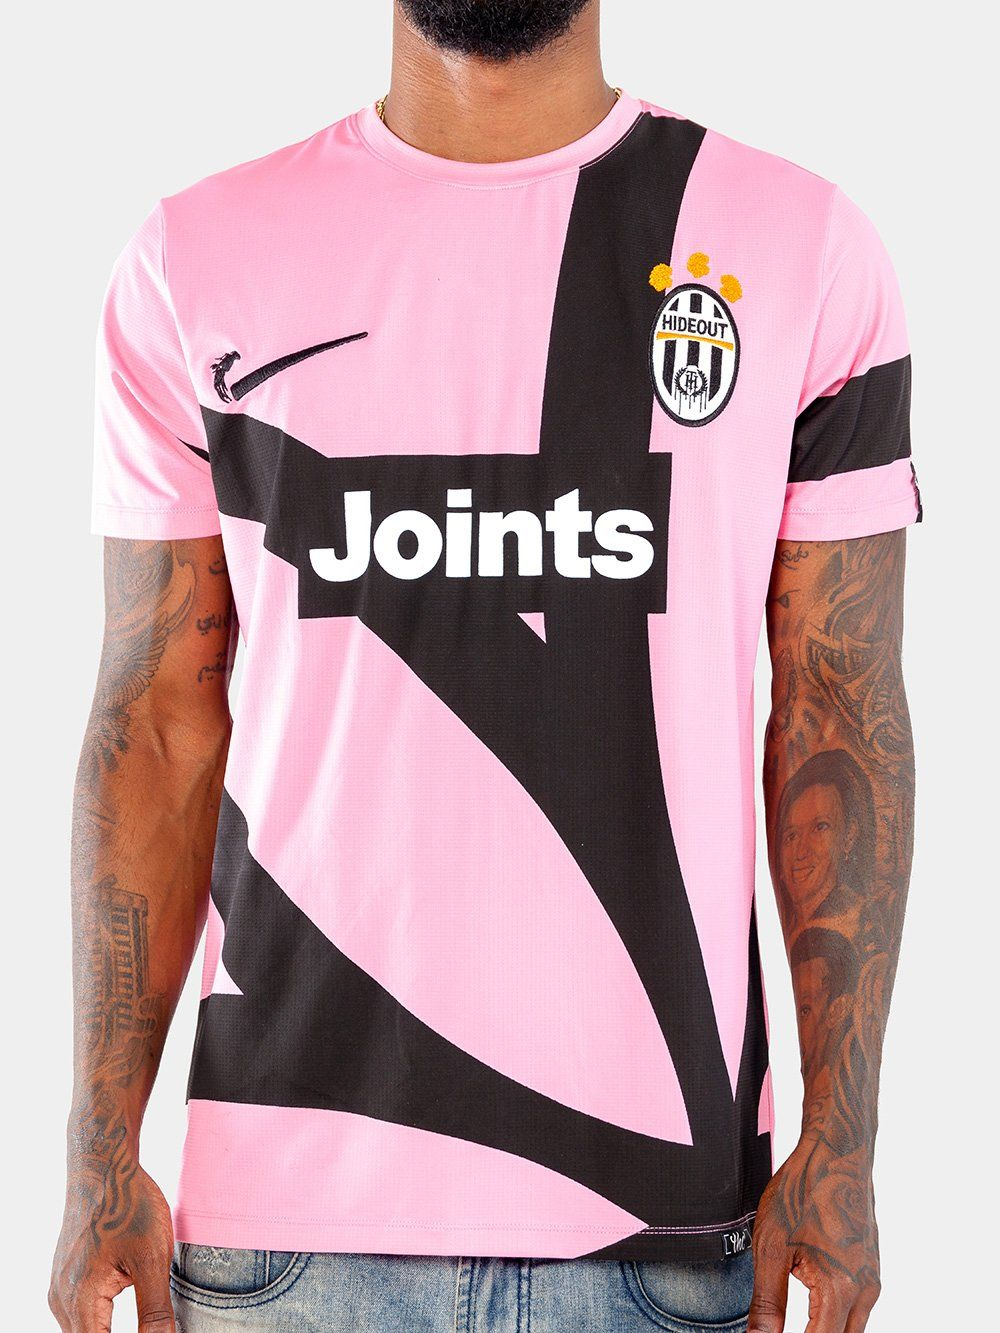 1378b40920d The Hideout Clothing Potent Jersey - Turin Pink 100% Polyester Digital Print  Background